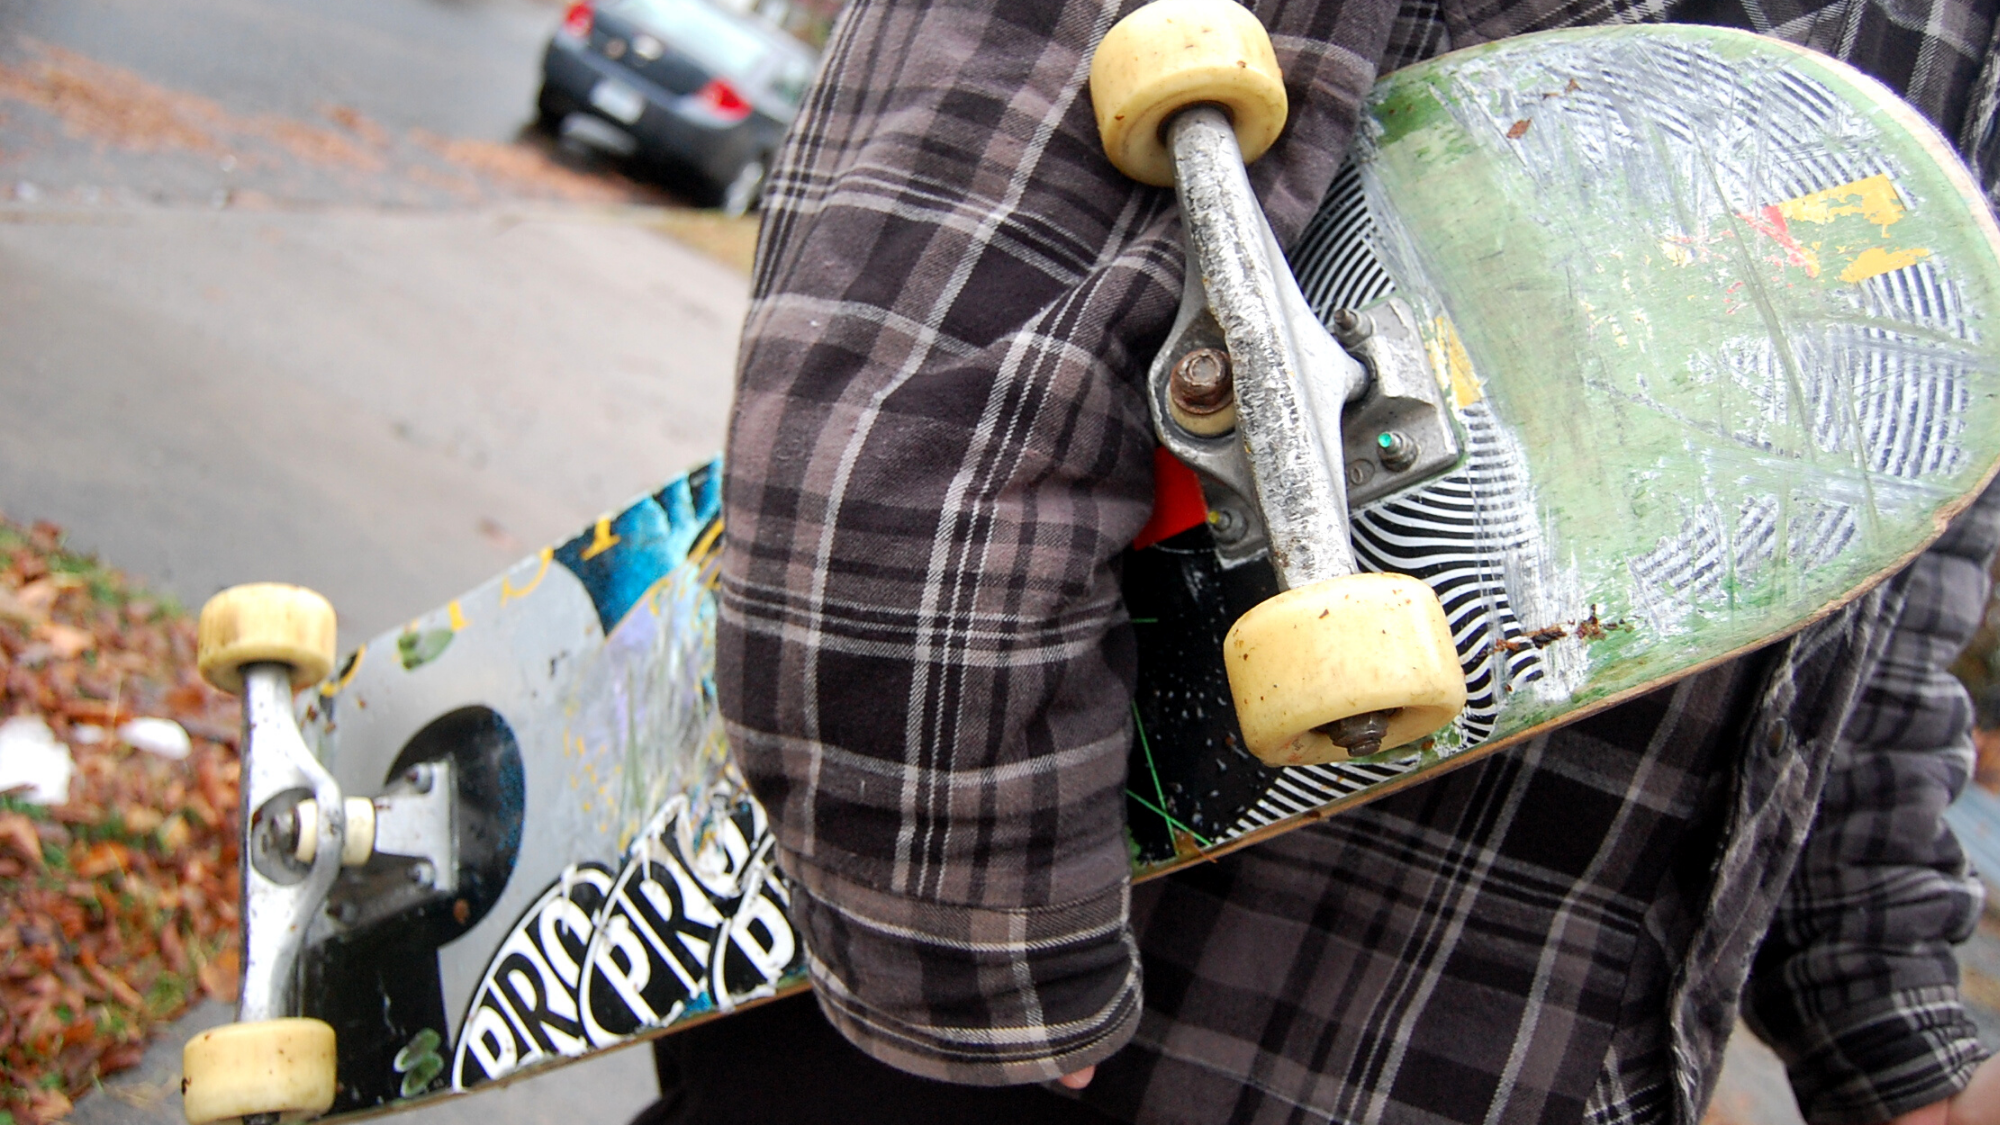 A person holding a skateboard under their arms.